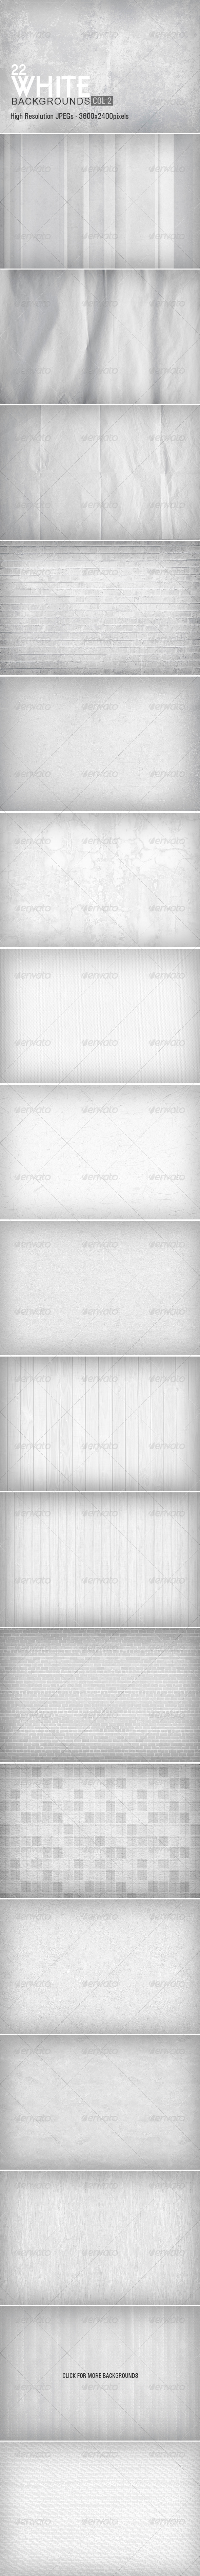 White Backgrounds Collection 2 - Miscellaneous Backgrounds